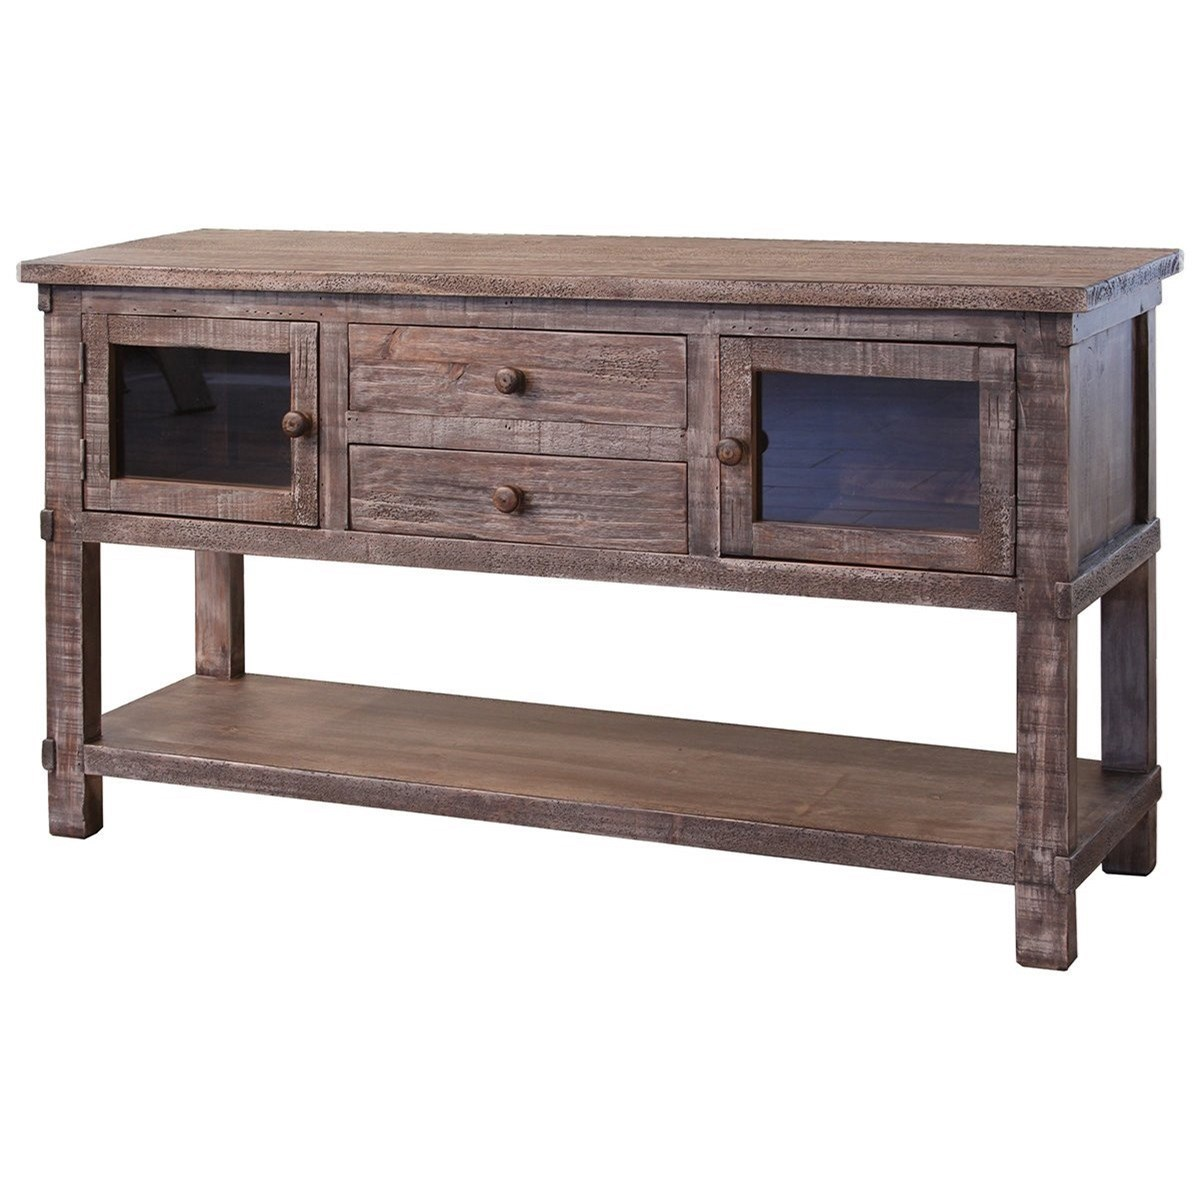 San Angelo 2 Drawer 2 Door Sofa Table by International Furniture Direct at Wilson's Furniture